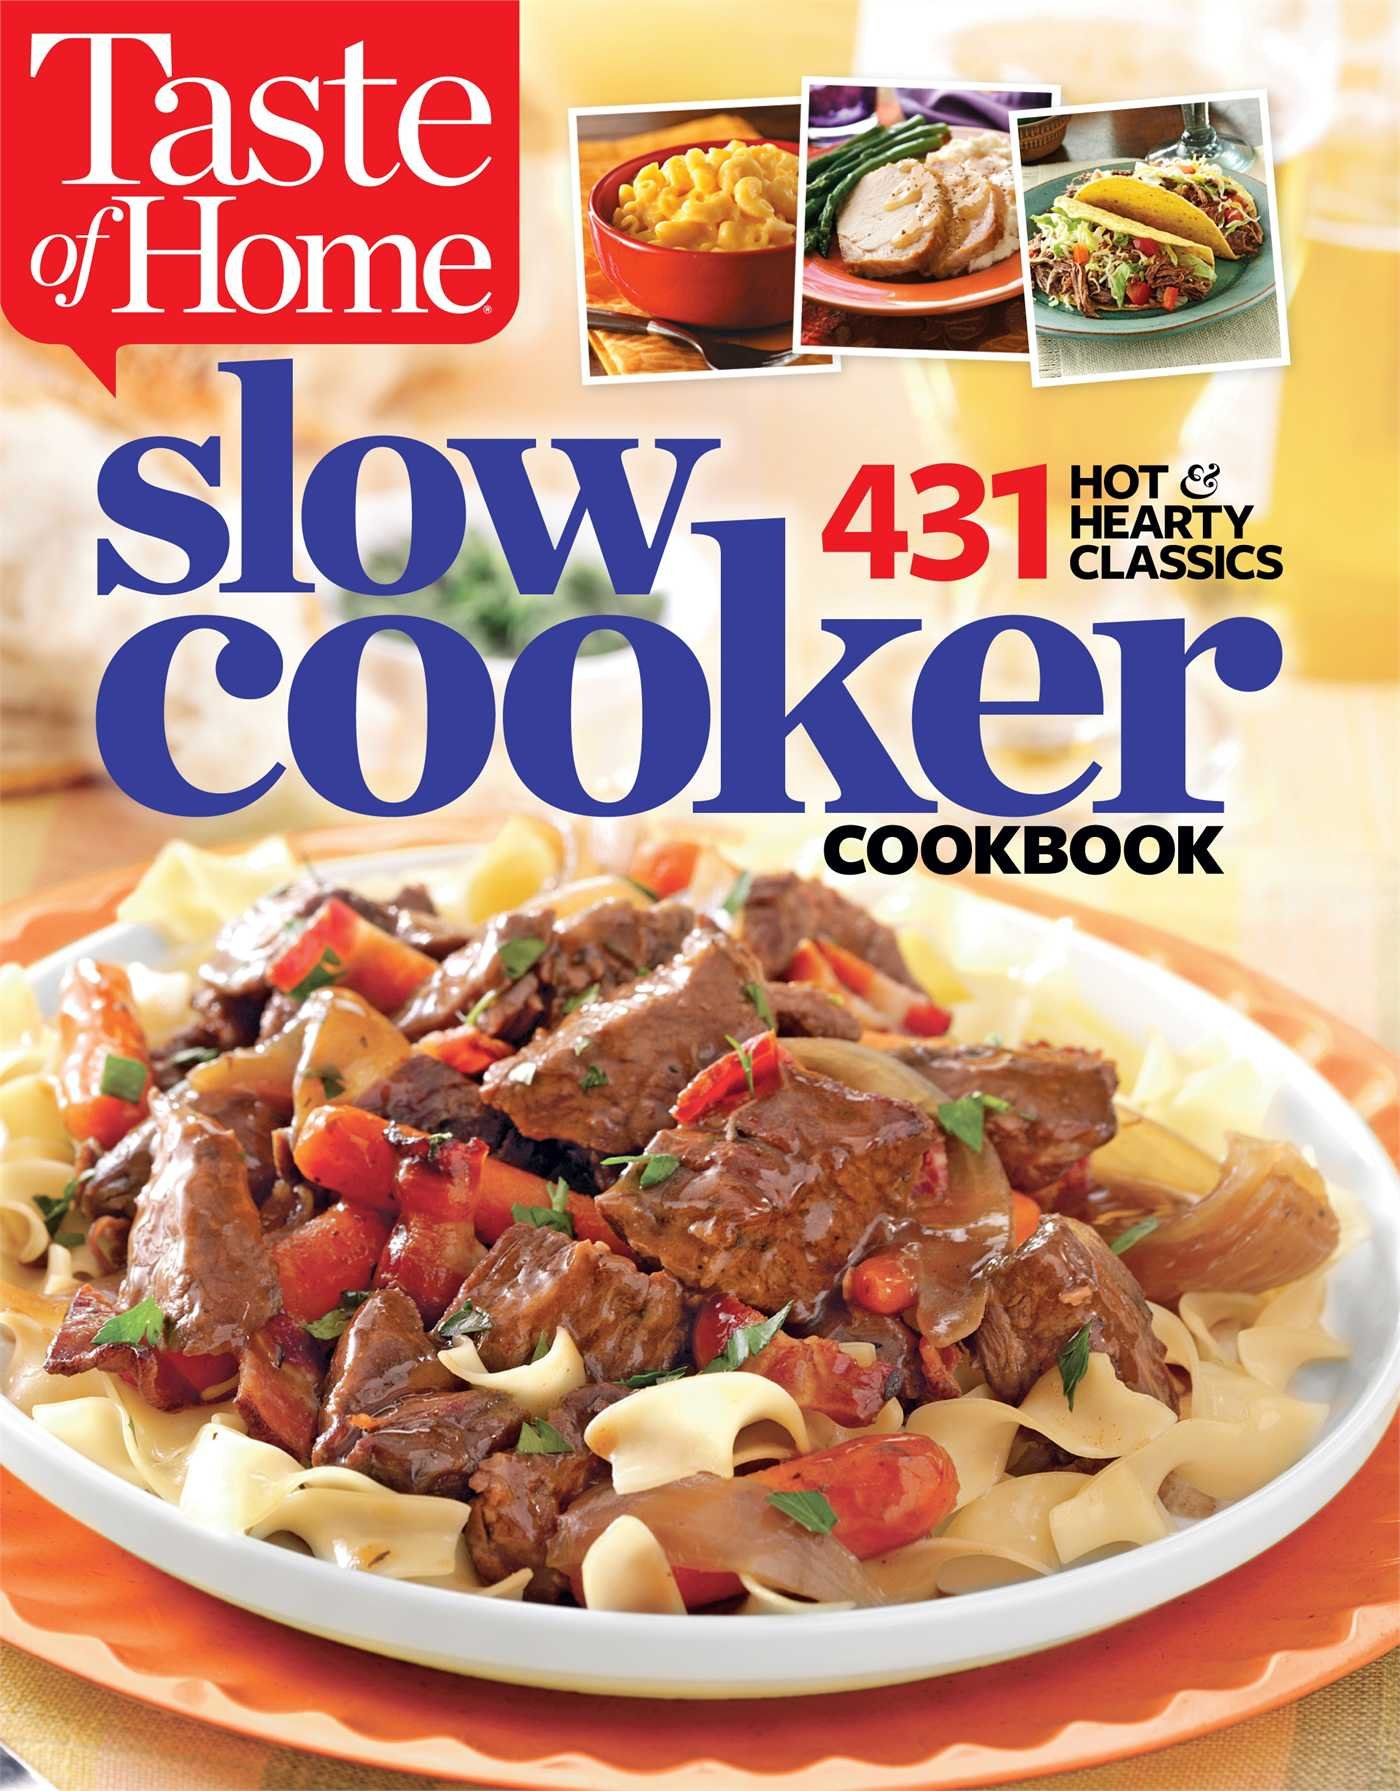 3 Slow Cooker Cookbooks With Next-Level Recipes You Won't Find on Google | STYLECASTER